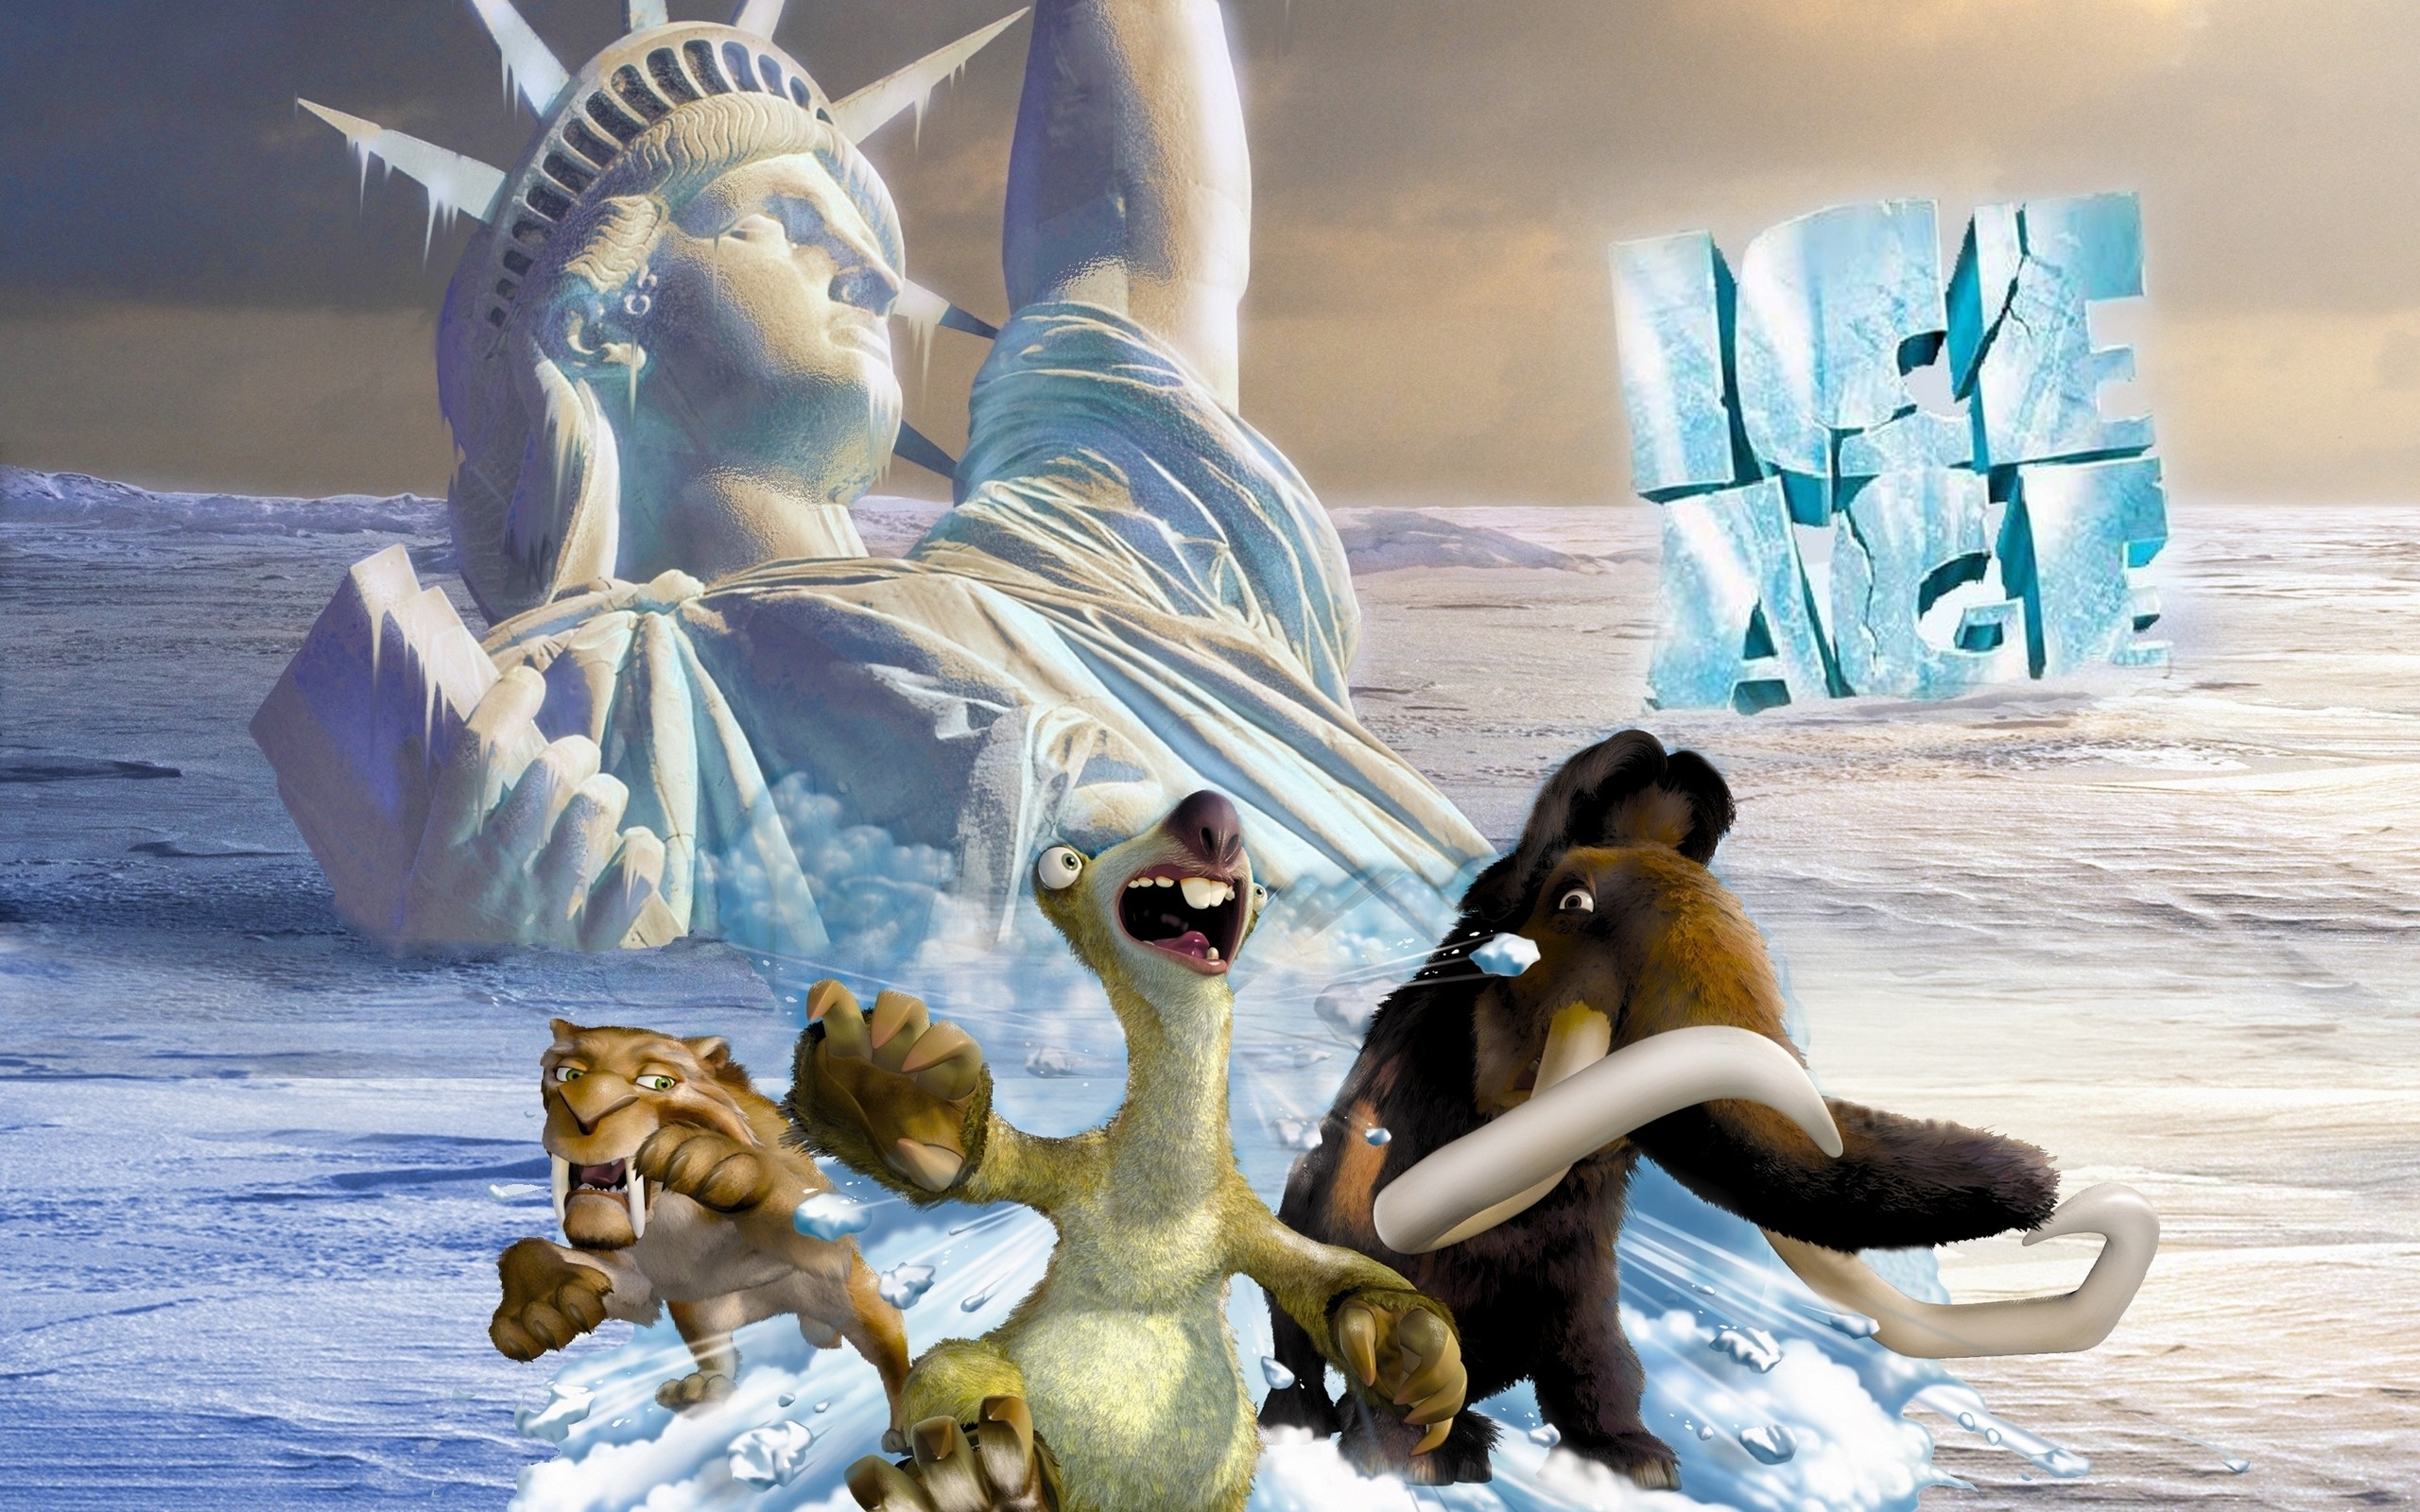 ice-age-hd-wallpapers-9 | Ice Age HD Wallpapers | Pinterest | Ice age, Hd  wallpaper and Wallpaper